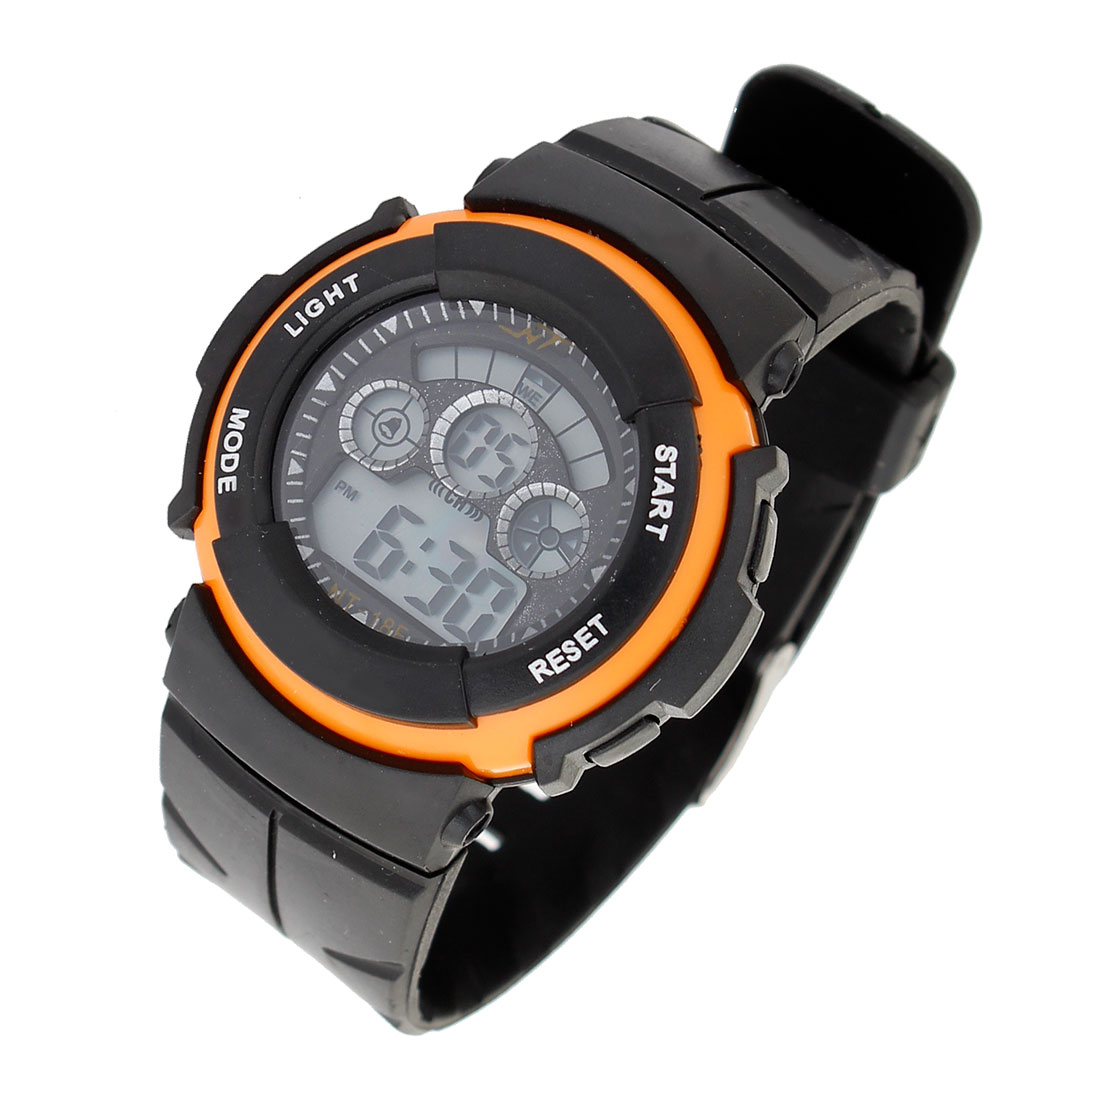 Man Hour Display Adjustable Band Stopwatch Alarm Watch Black Orange